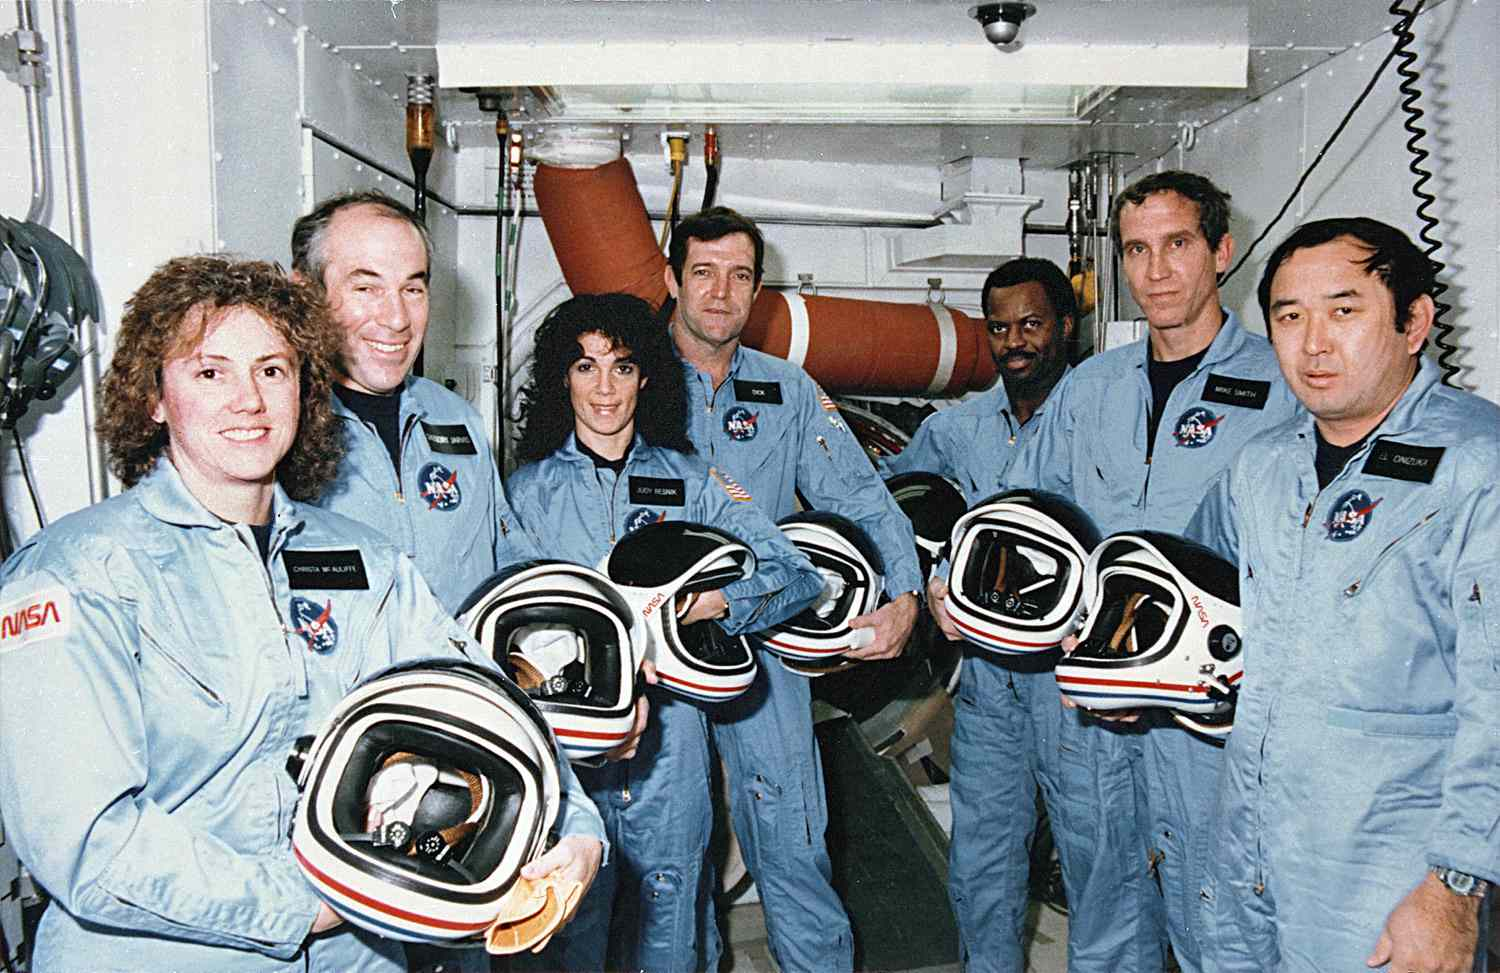 Space Shuttle Challenger Disaster STS-51L Pictures - 51-L Challenger Crew in White Room